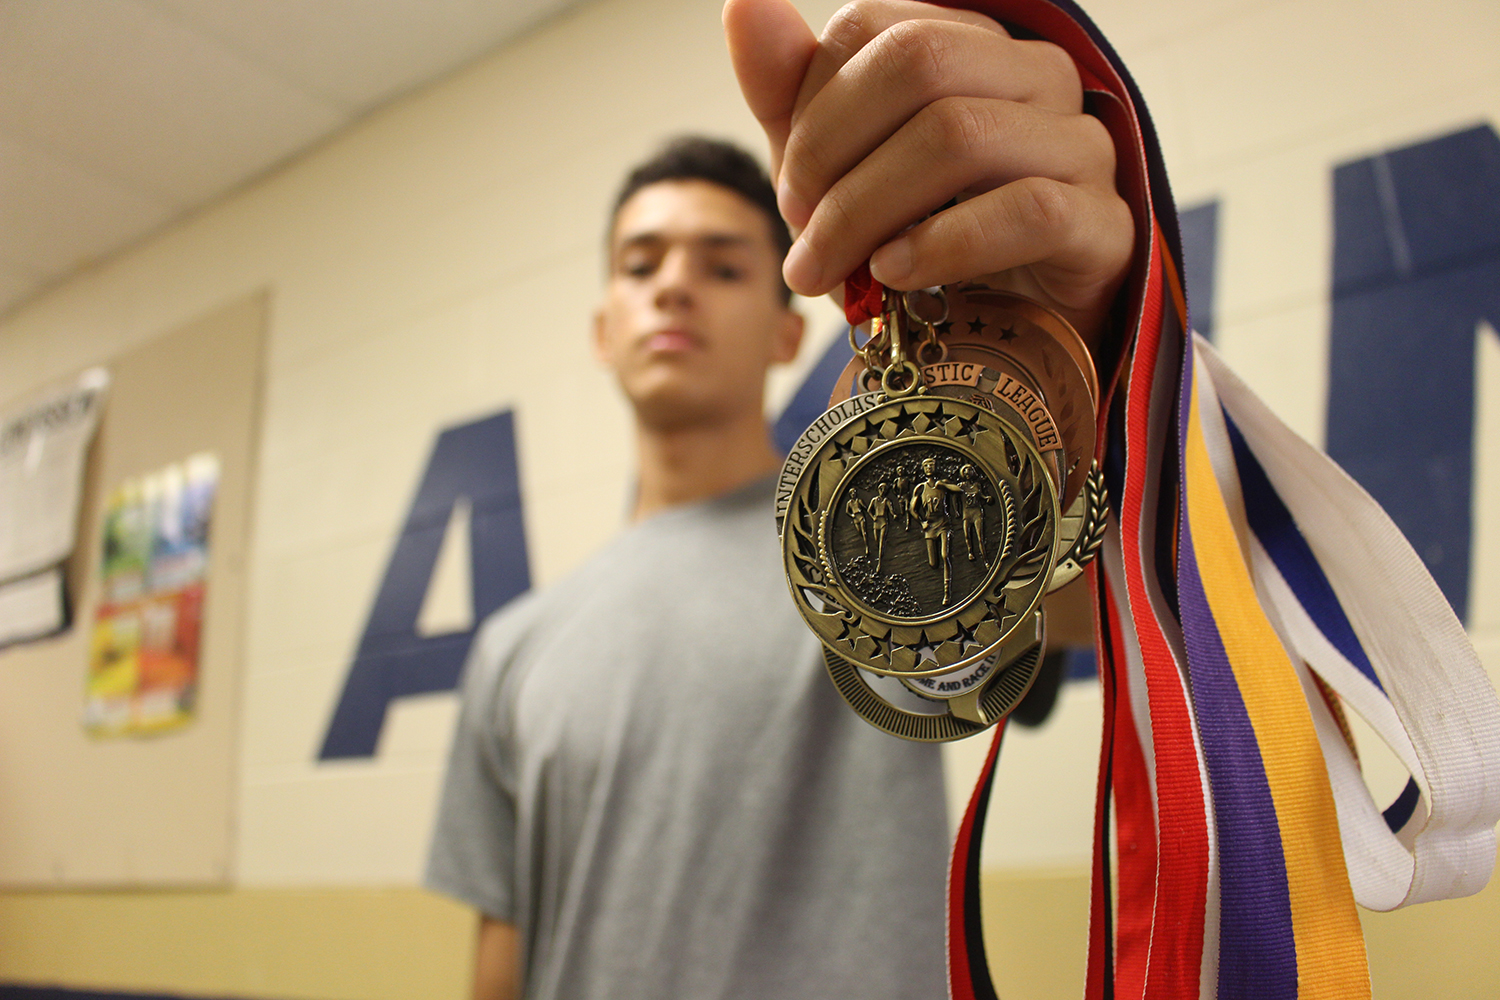 Senior Cassius Serff-Roberts shows off one of his many medals that he has won as a Cross Country runner. He beat an Akins record by running a 5K in less than 15-minutes. Later that month beating his own record with 10 seconds less than the first time.